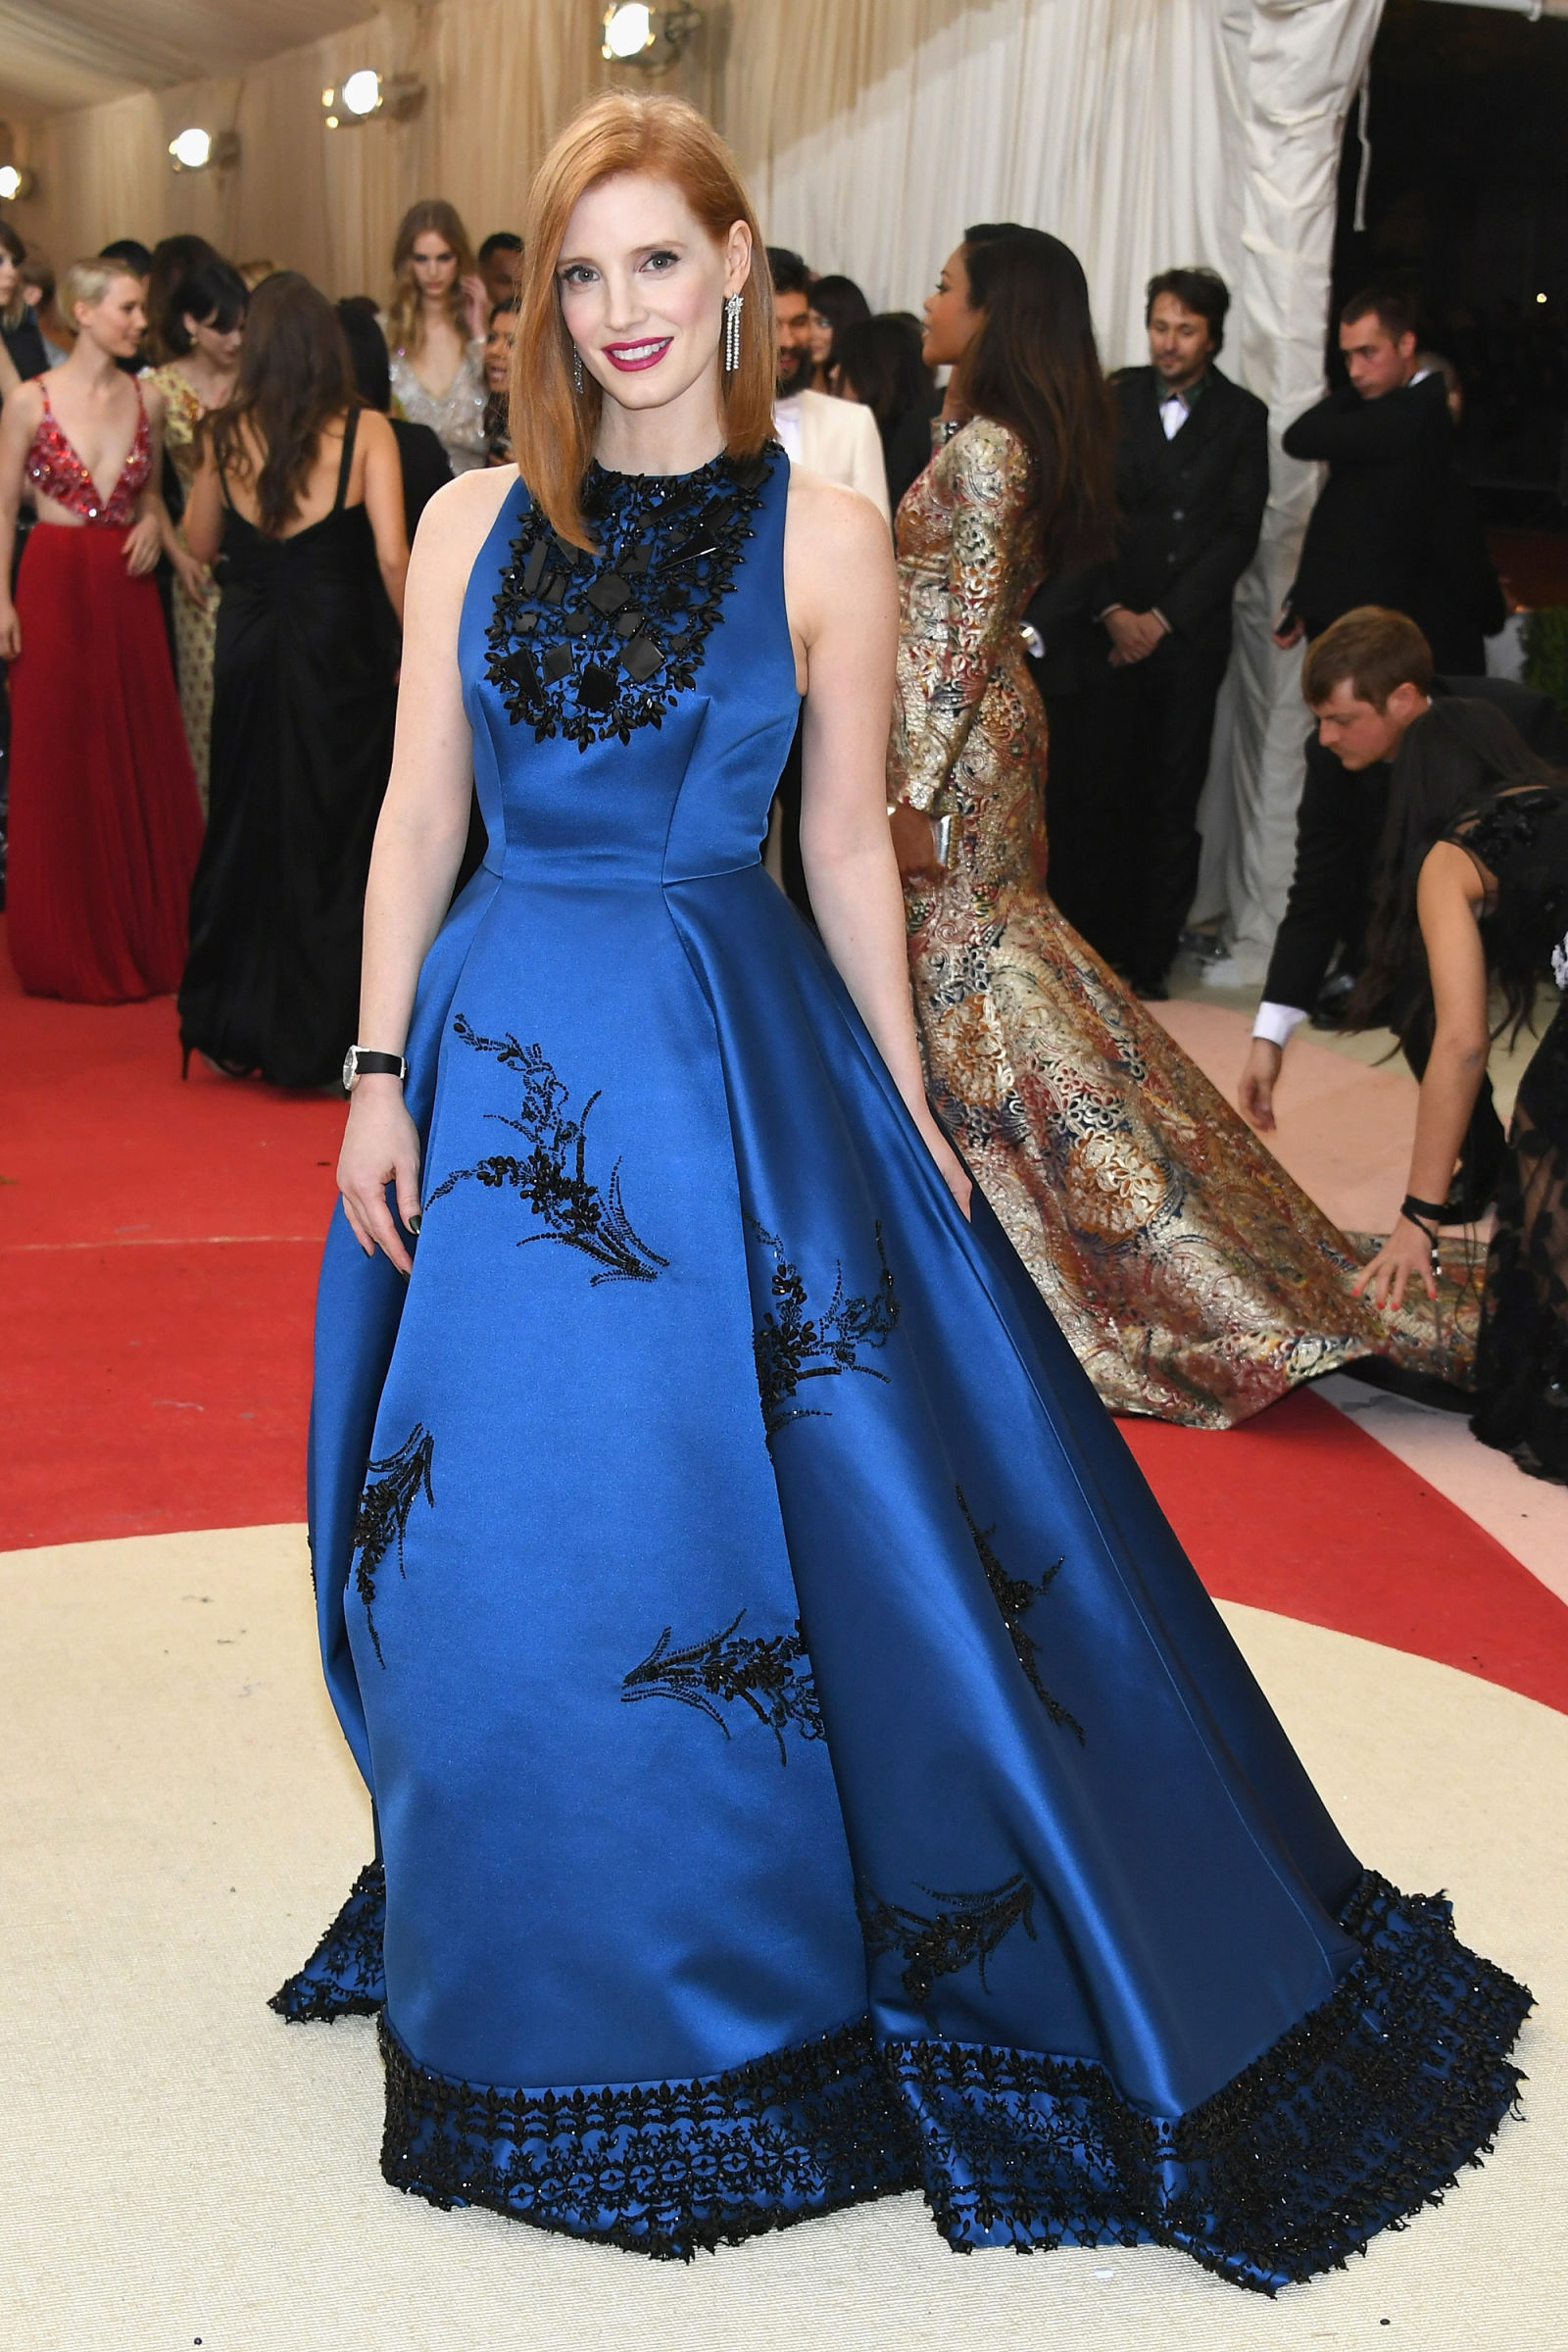 Jessica Chastain lob hairstyles at Met Gala 2016